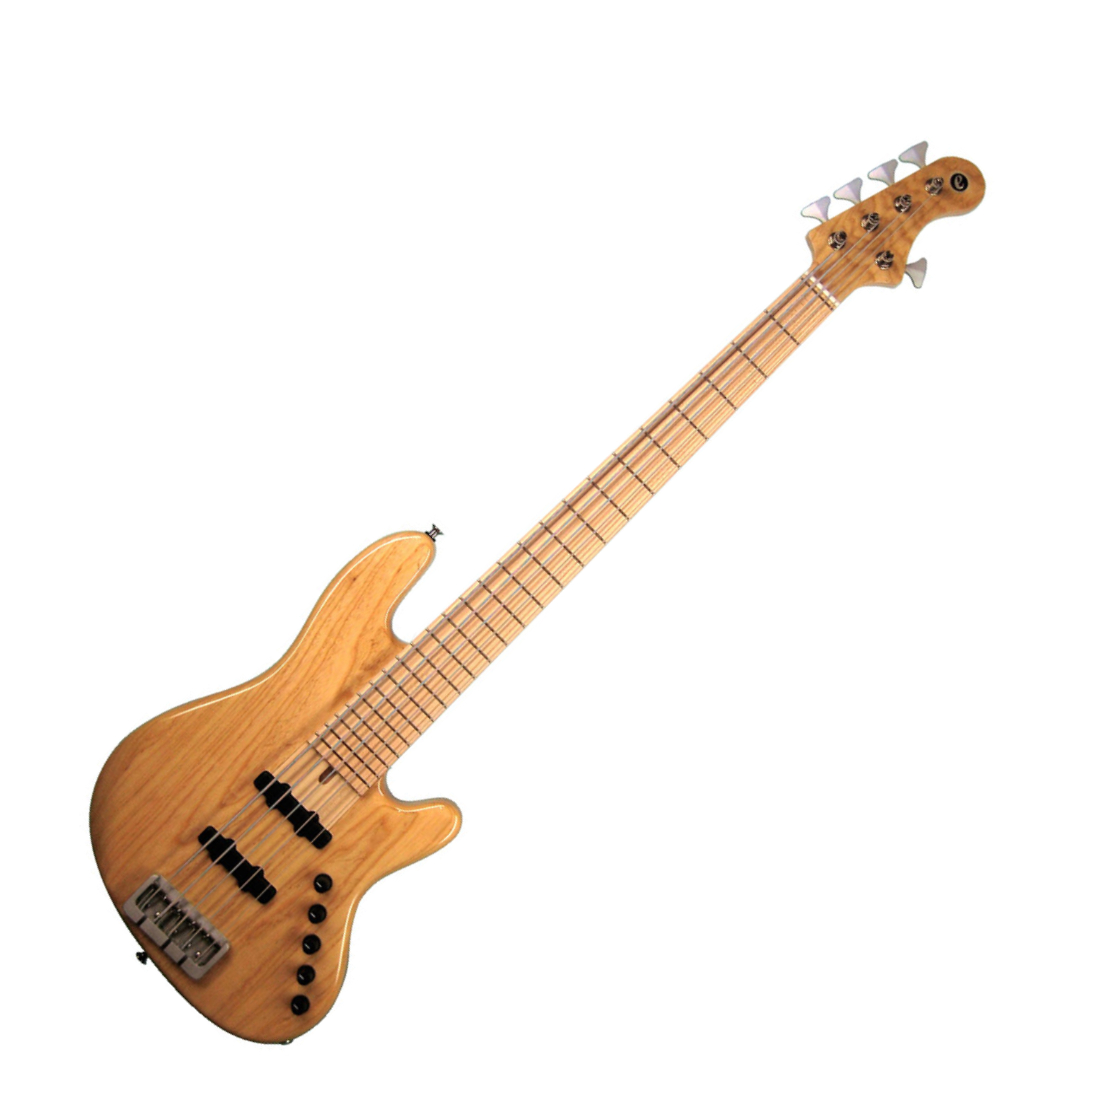 Bass Review - For Bassist : Elrick Expat NJB Series (New ... Bass Guitar Instrument